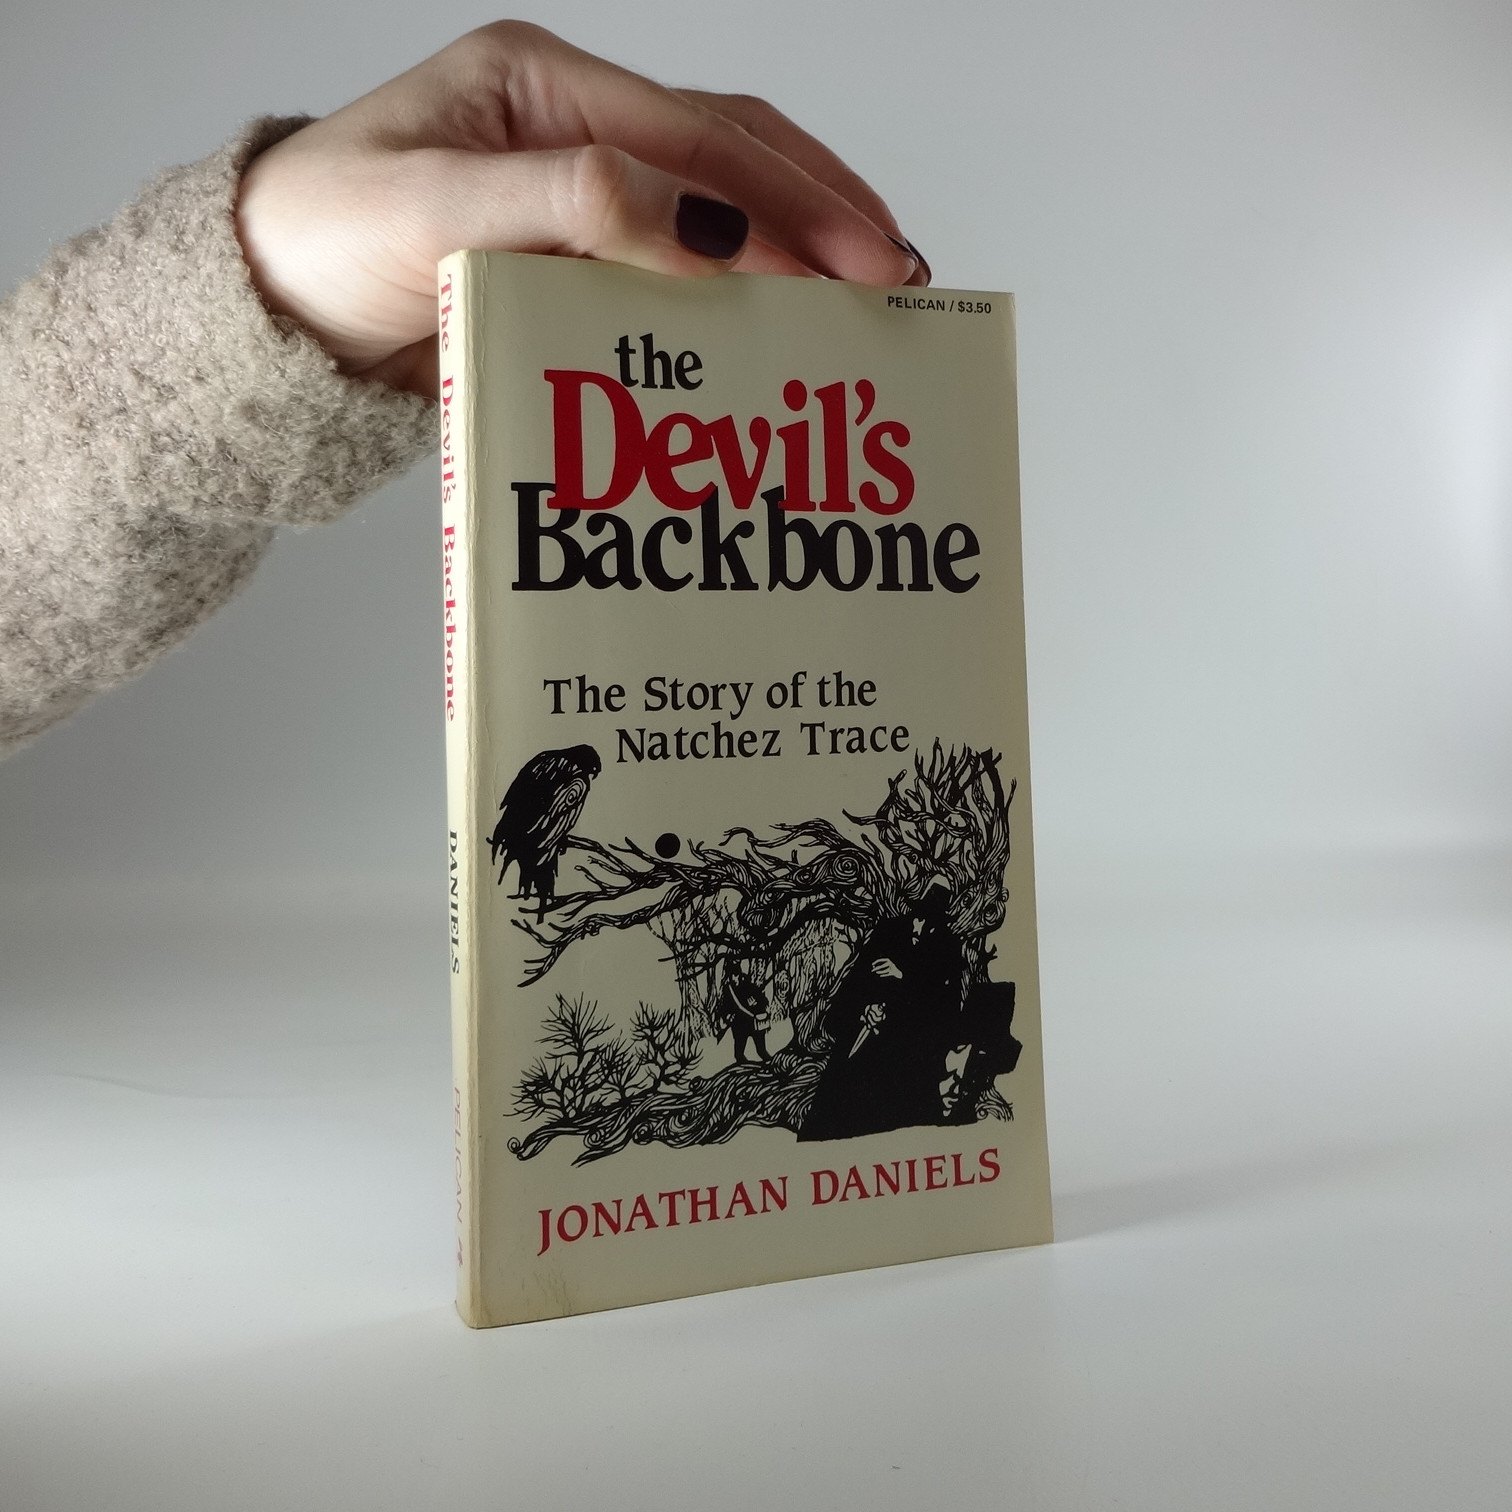 antikvární kniha The Devil's Blackbone. The Story of the Natchez Trace, 1985